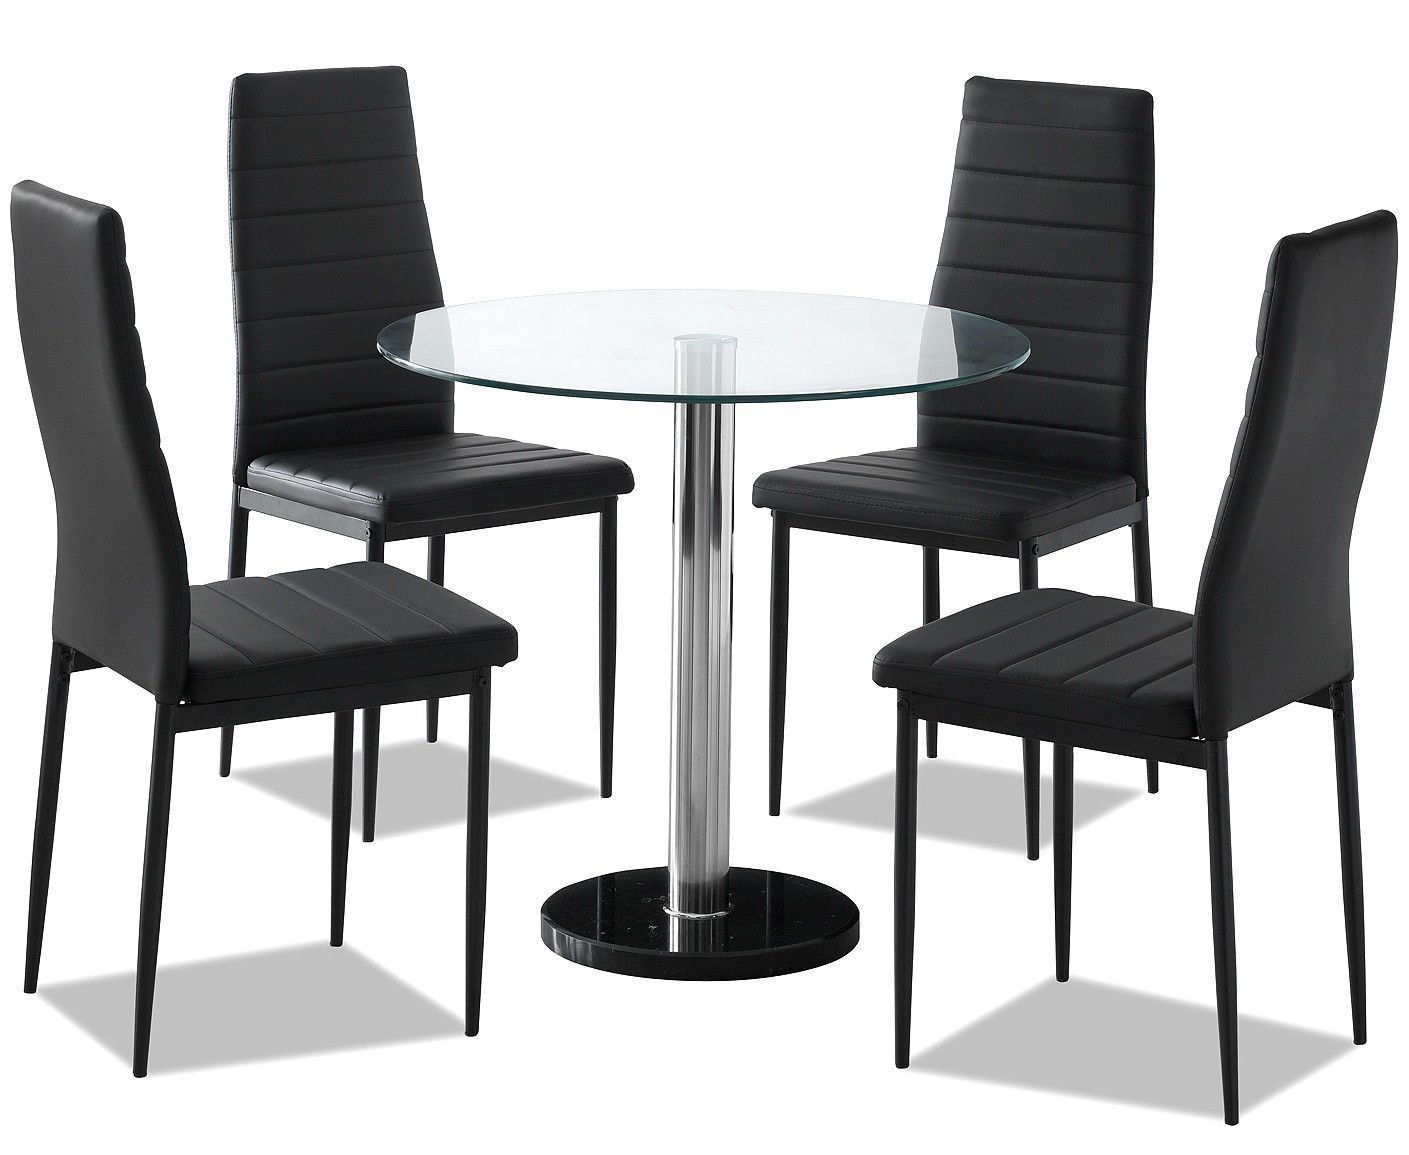 New Sienna Round Clear Glass Dining Set With 4 Black Faux Leather chairs